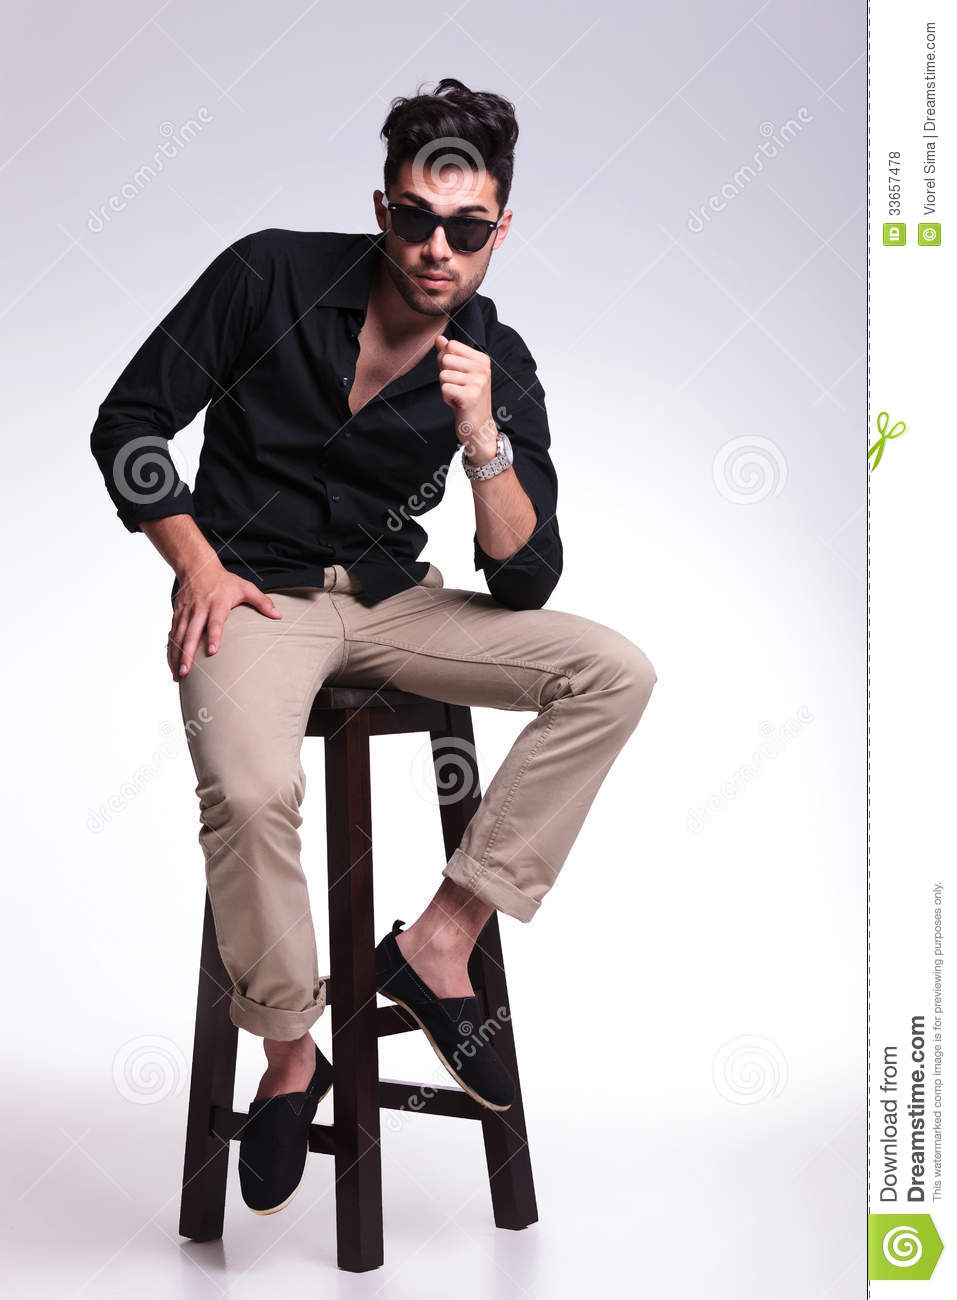 Young Man Posing On A High Chair